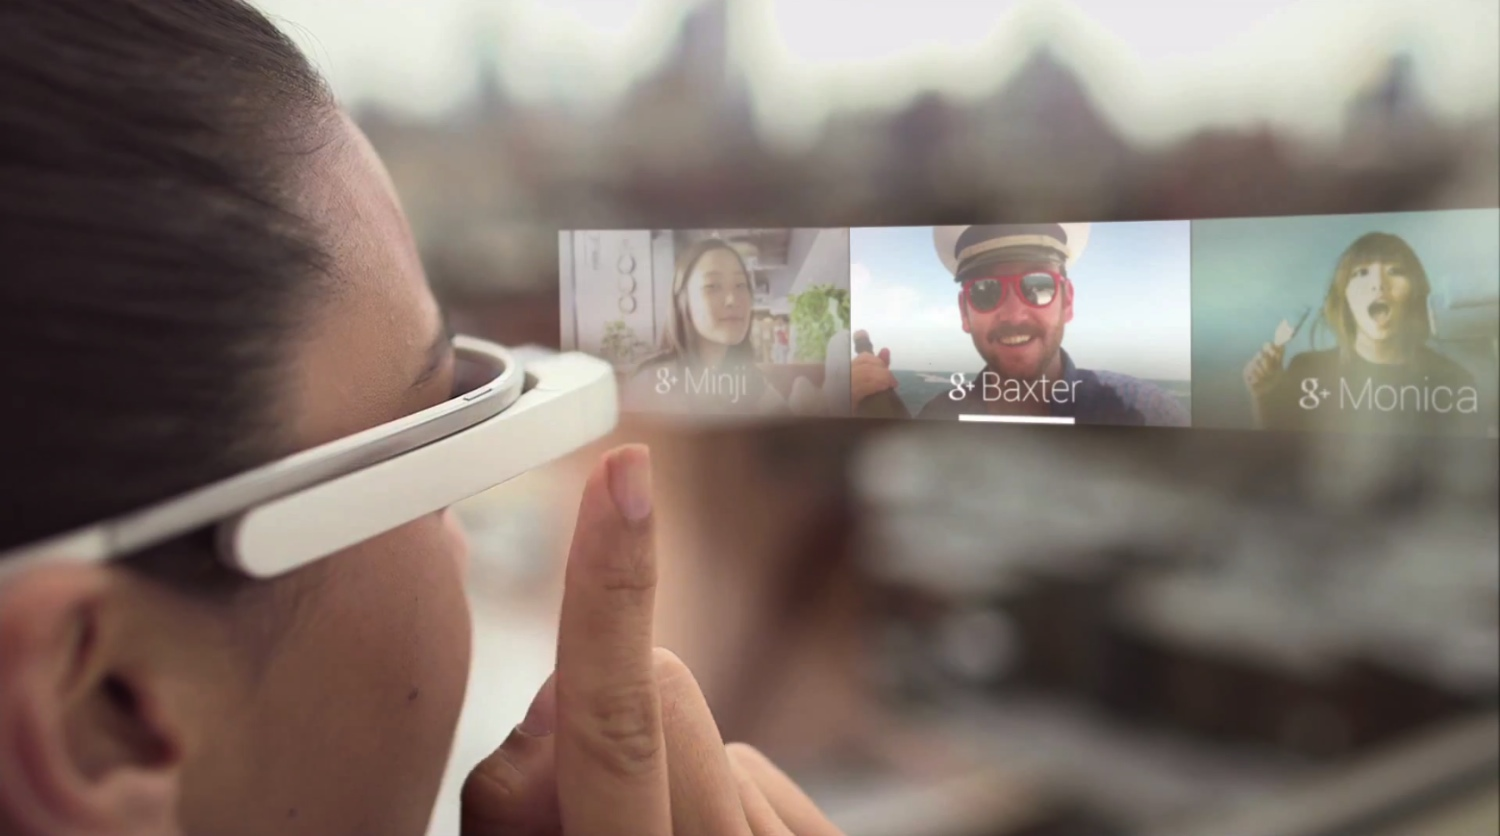 https://i2.wp.com/www.italiangoodnews.com/wp-content/uploads/2015/04/Google-Glass-Dating-app-script.jpg